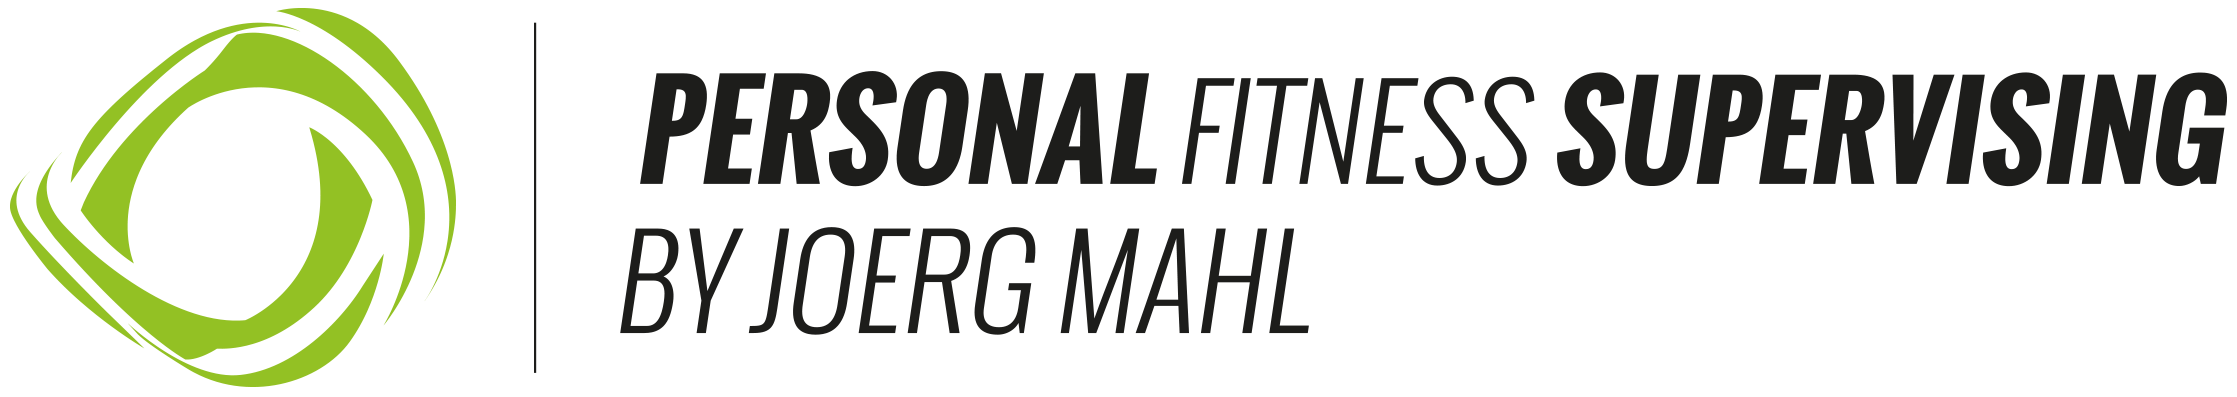 Personal Fitness Supervising by Joerg Mahl